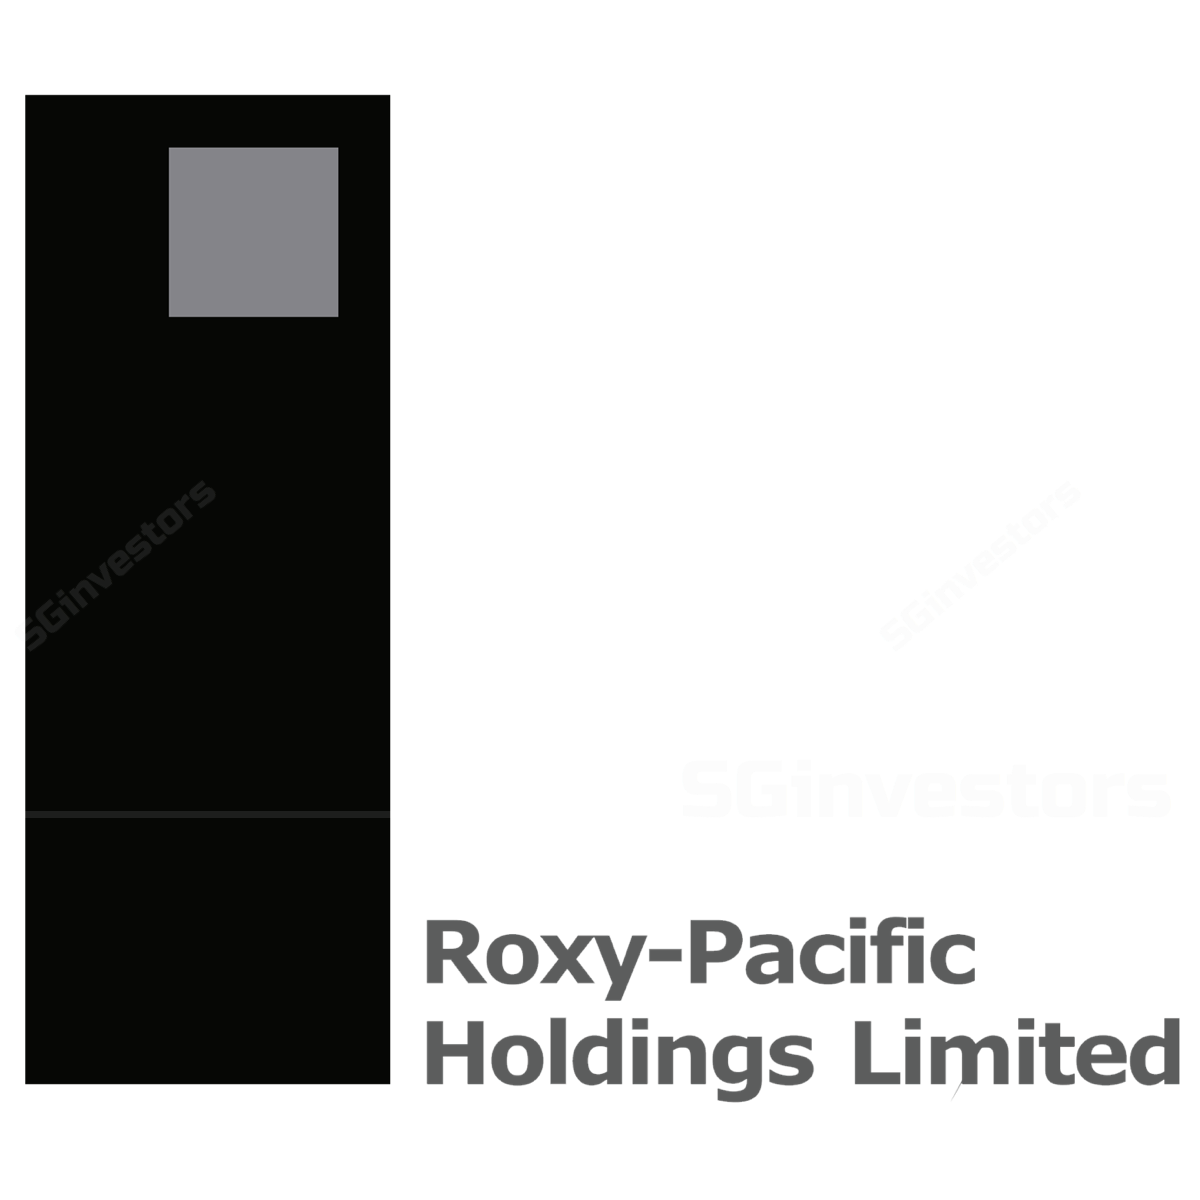 Roxy-Pacific Holdings - OCBC Investment 2018-02-15: Nimble To The Next Wave